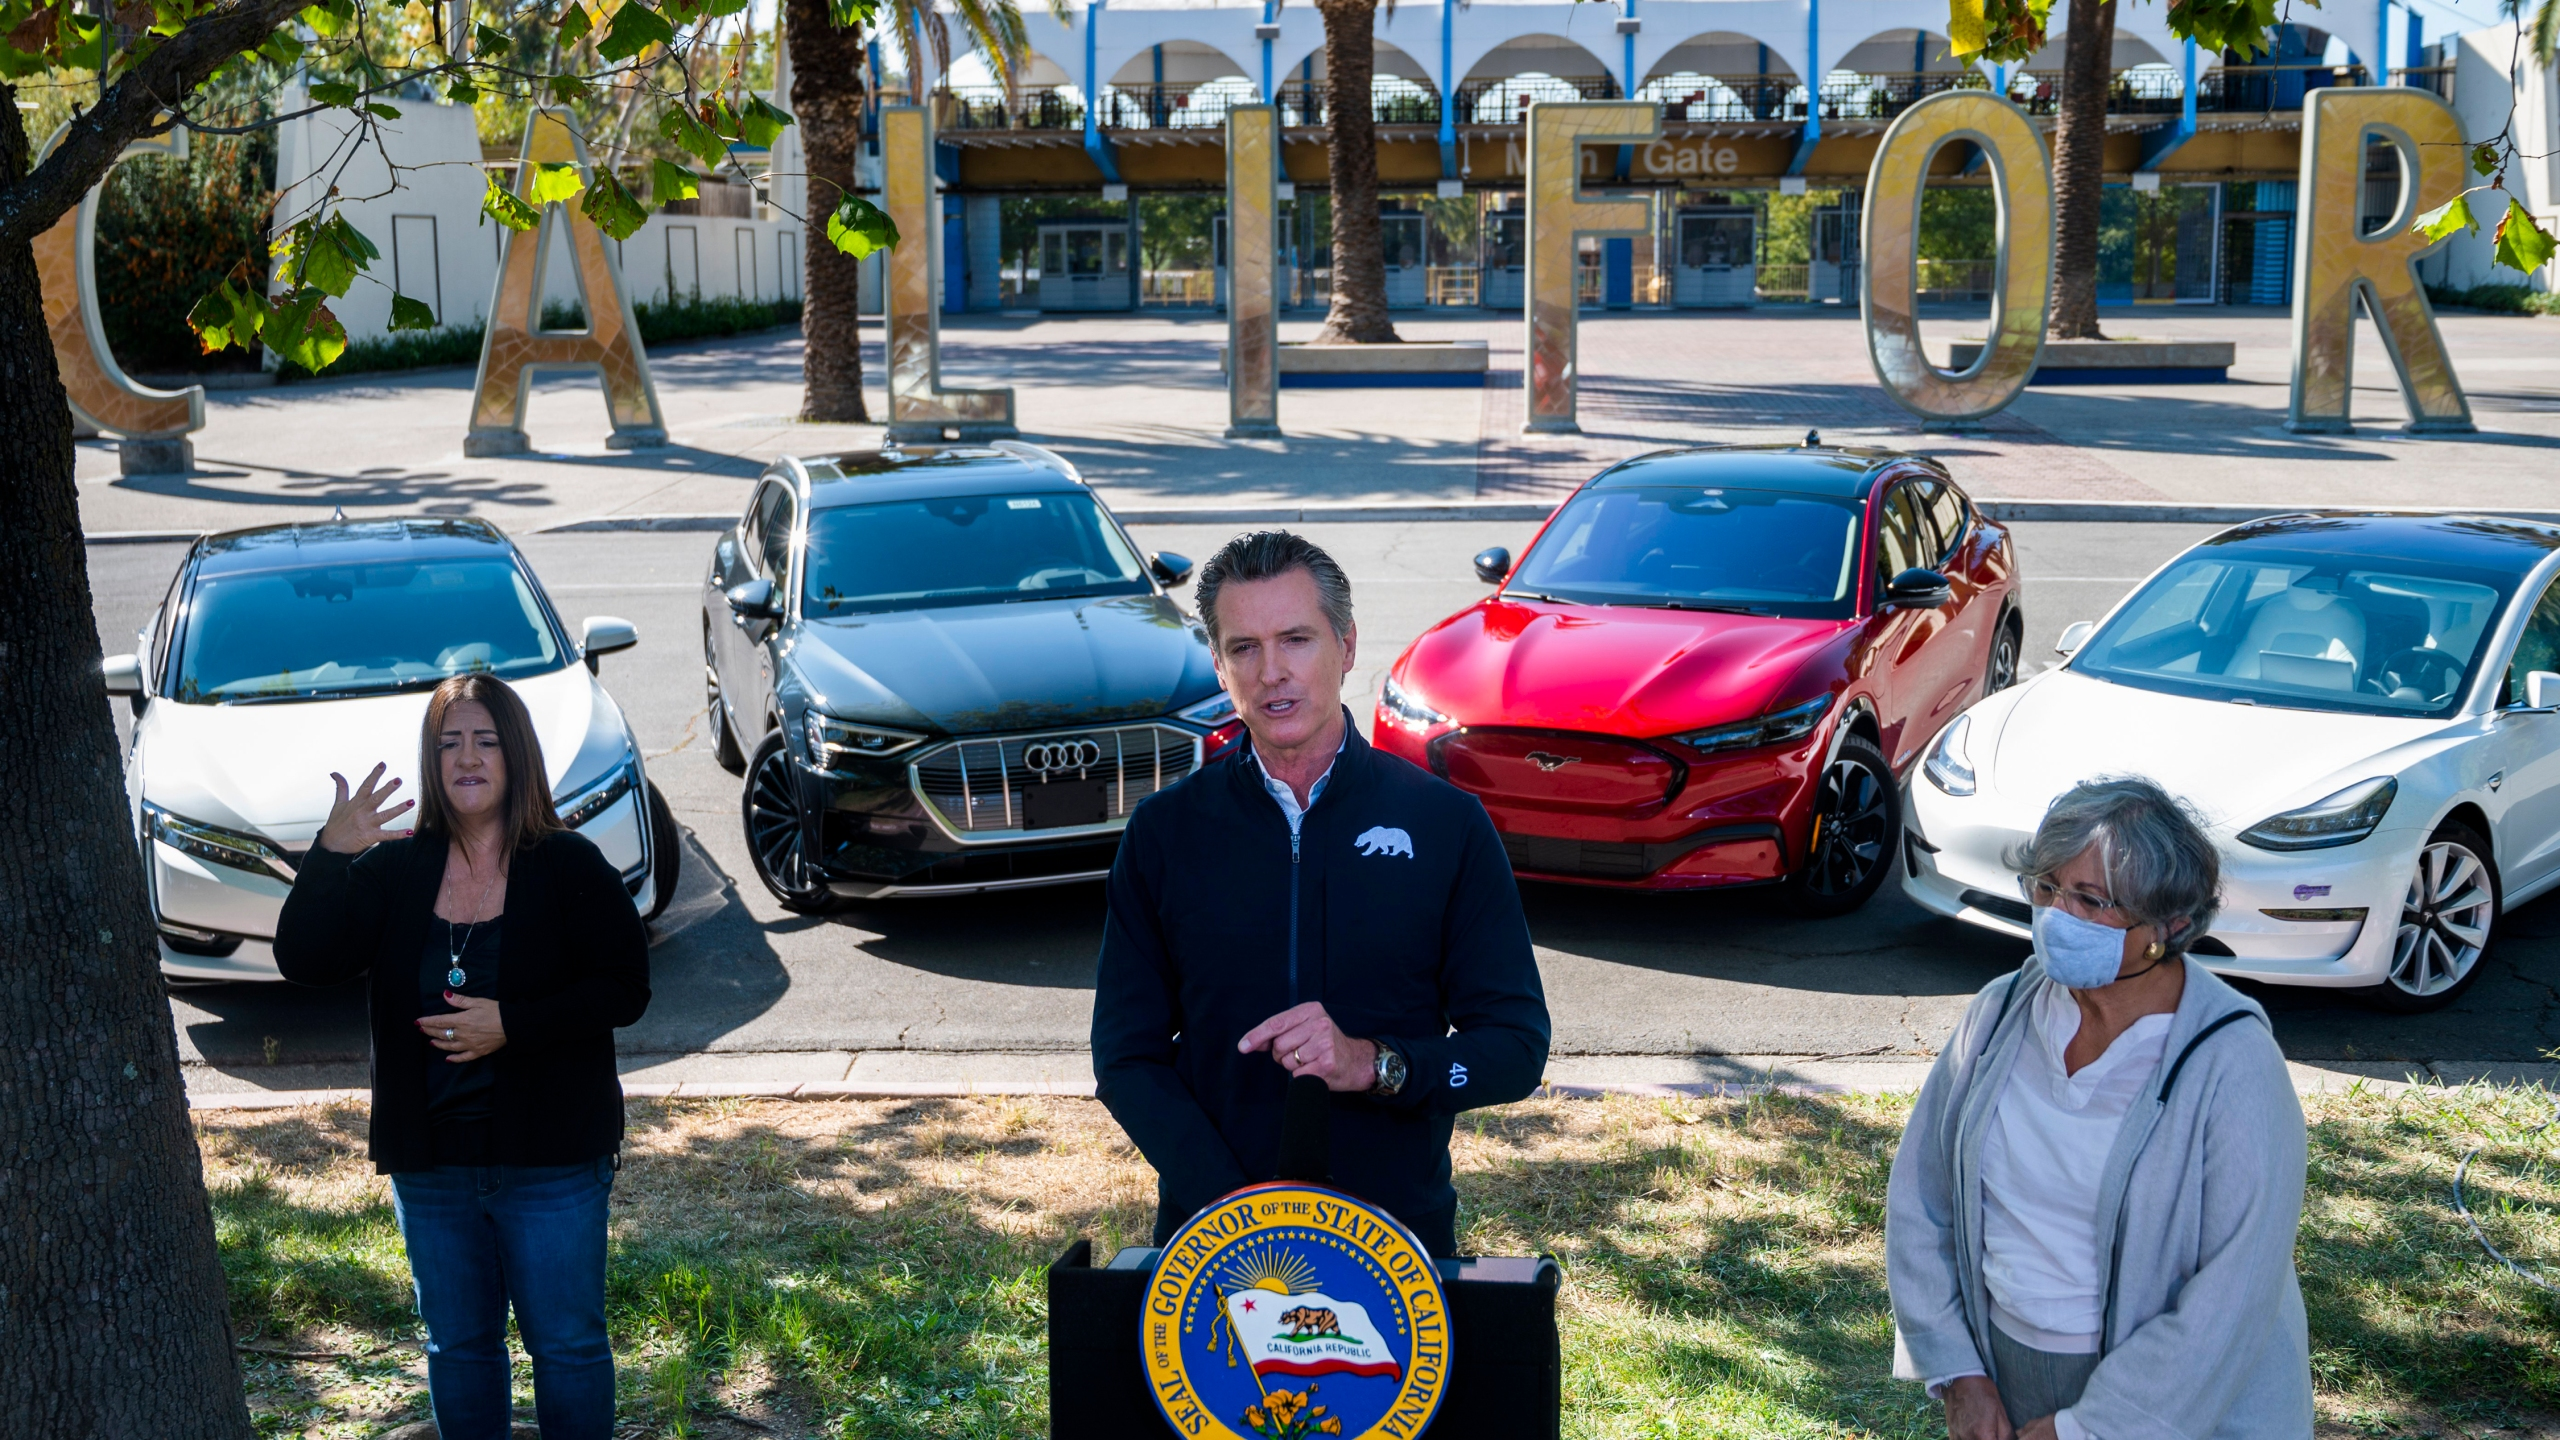 Gov. Gavin Newsom speaks at a press conference on Sept. 23, 2020, at Cal Expo in Sacramento where he announced an executive order requiring the sale of all new passenger vehicles to be zero-emission by 2035. (Daniel Kim/The Sacramento Bee via AP, Pool)